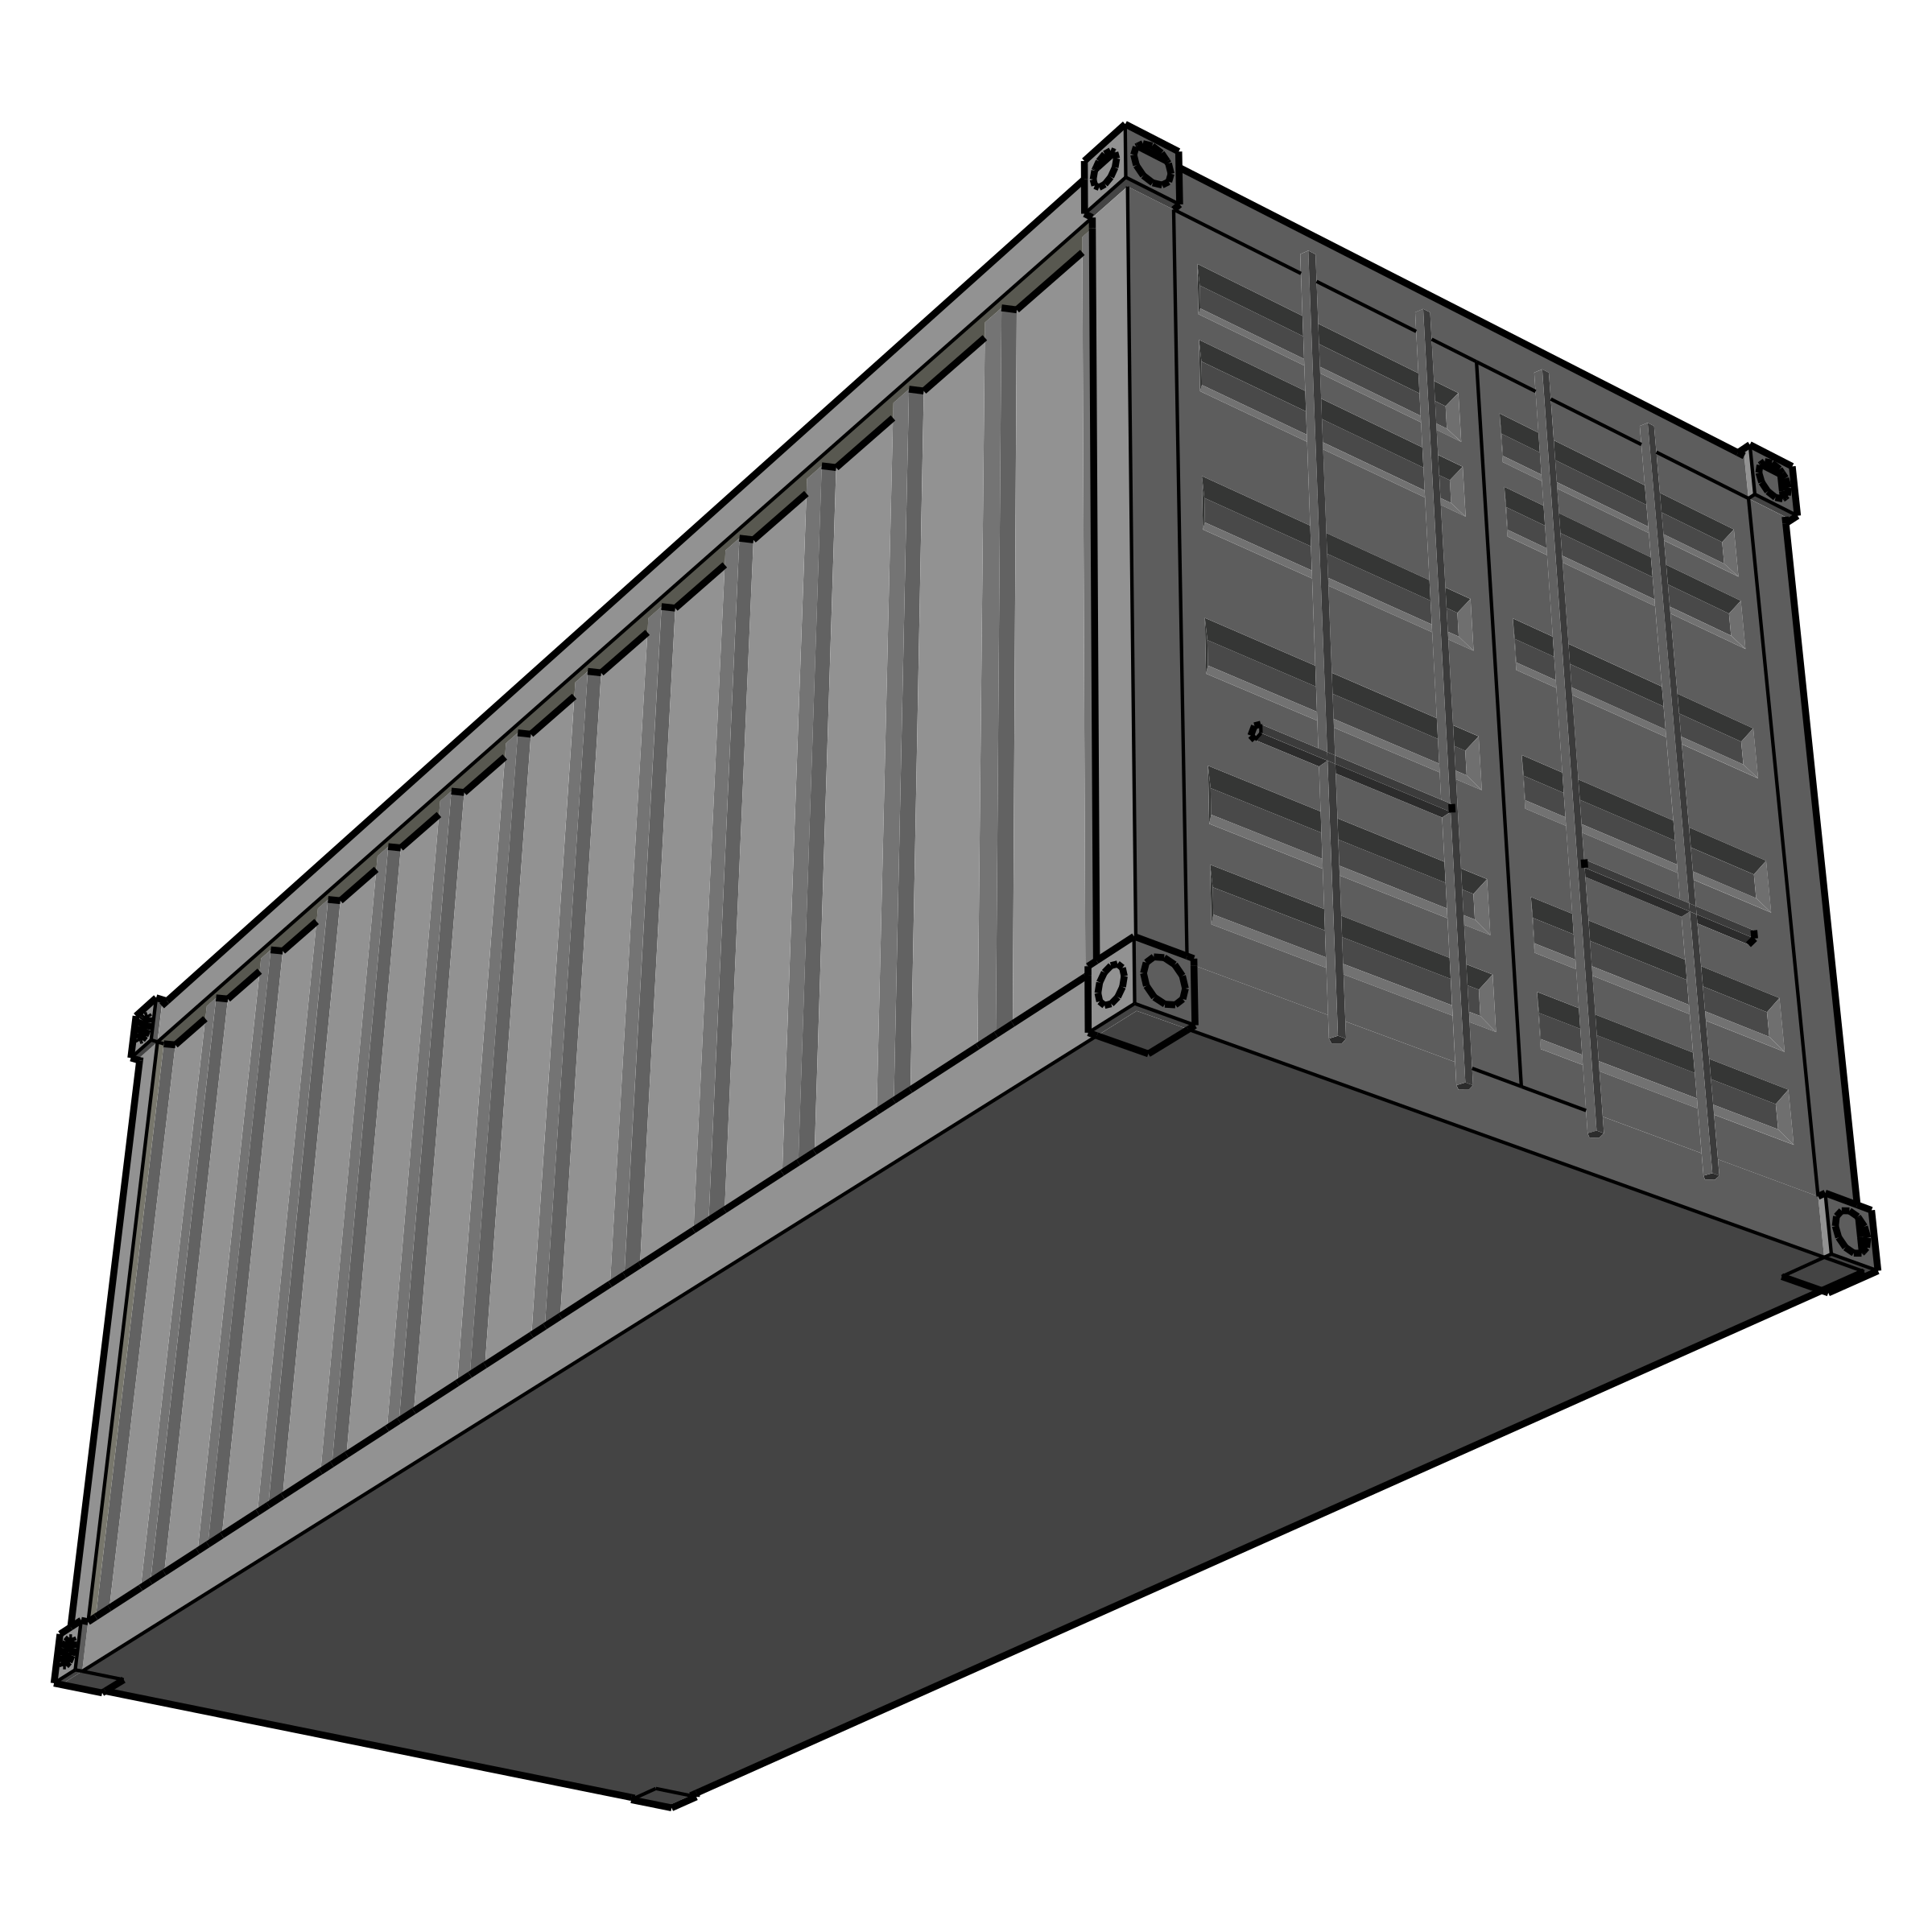 Shipping containers clipart.